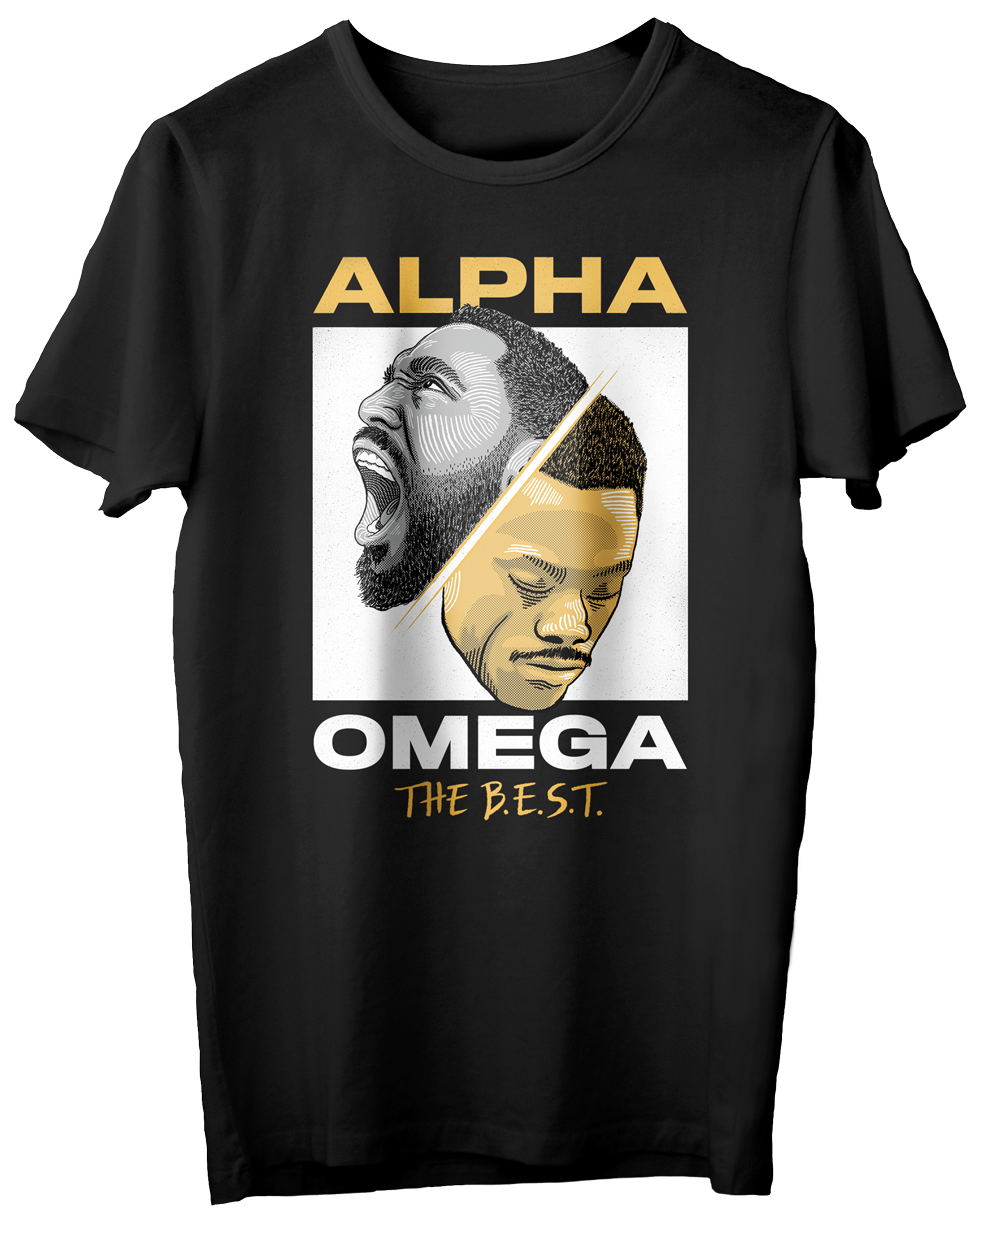 The BEST - Alpha Omega